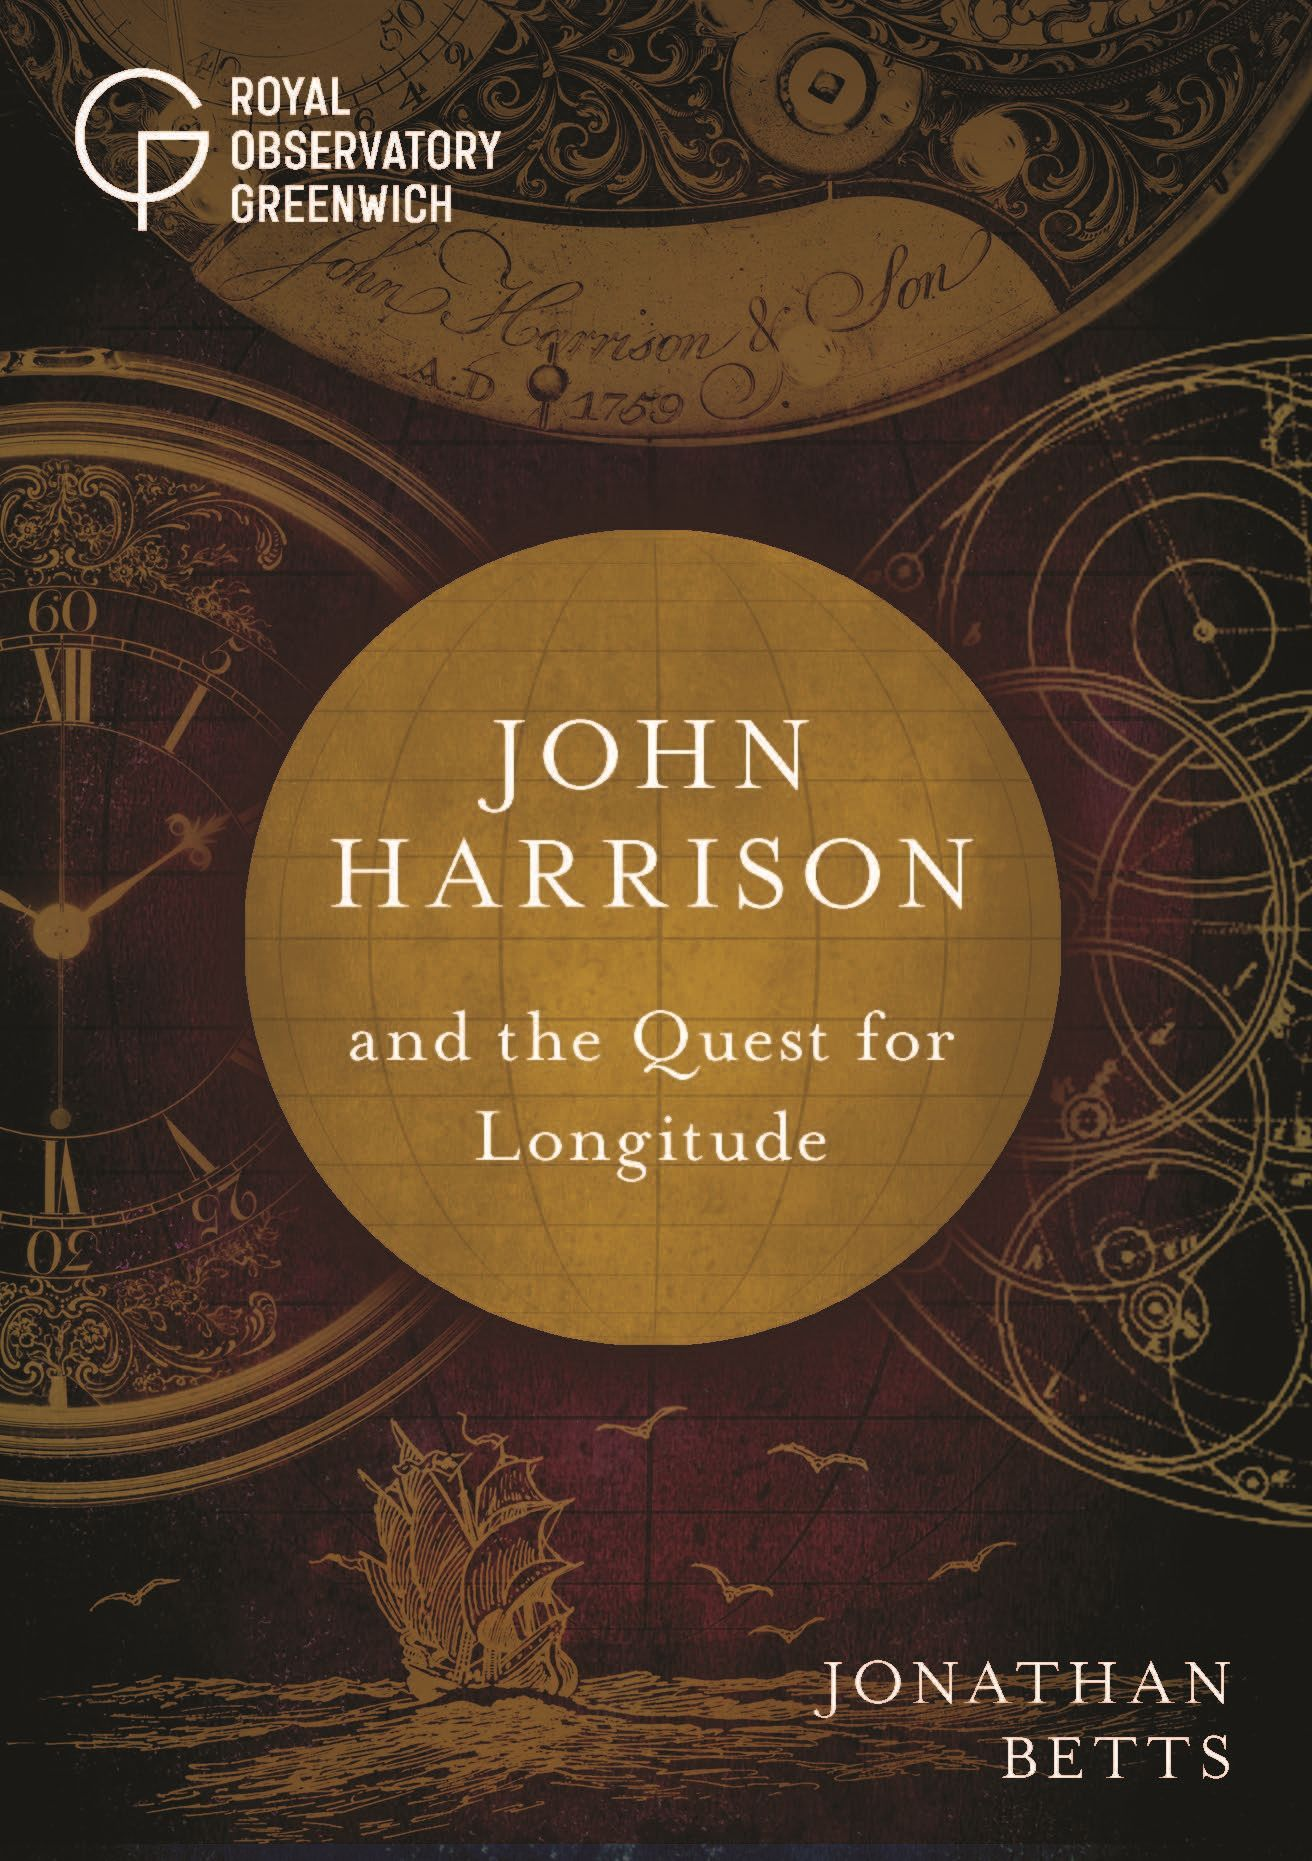 John Harrison and the Quest for Longitude: The Story of Longitude